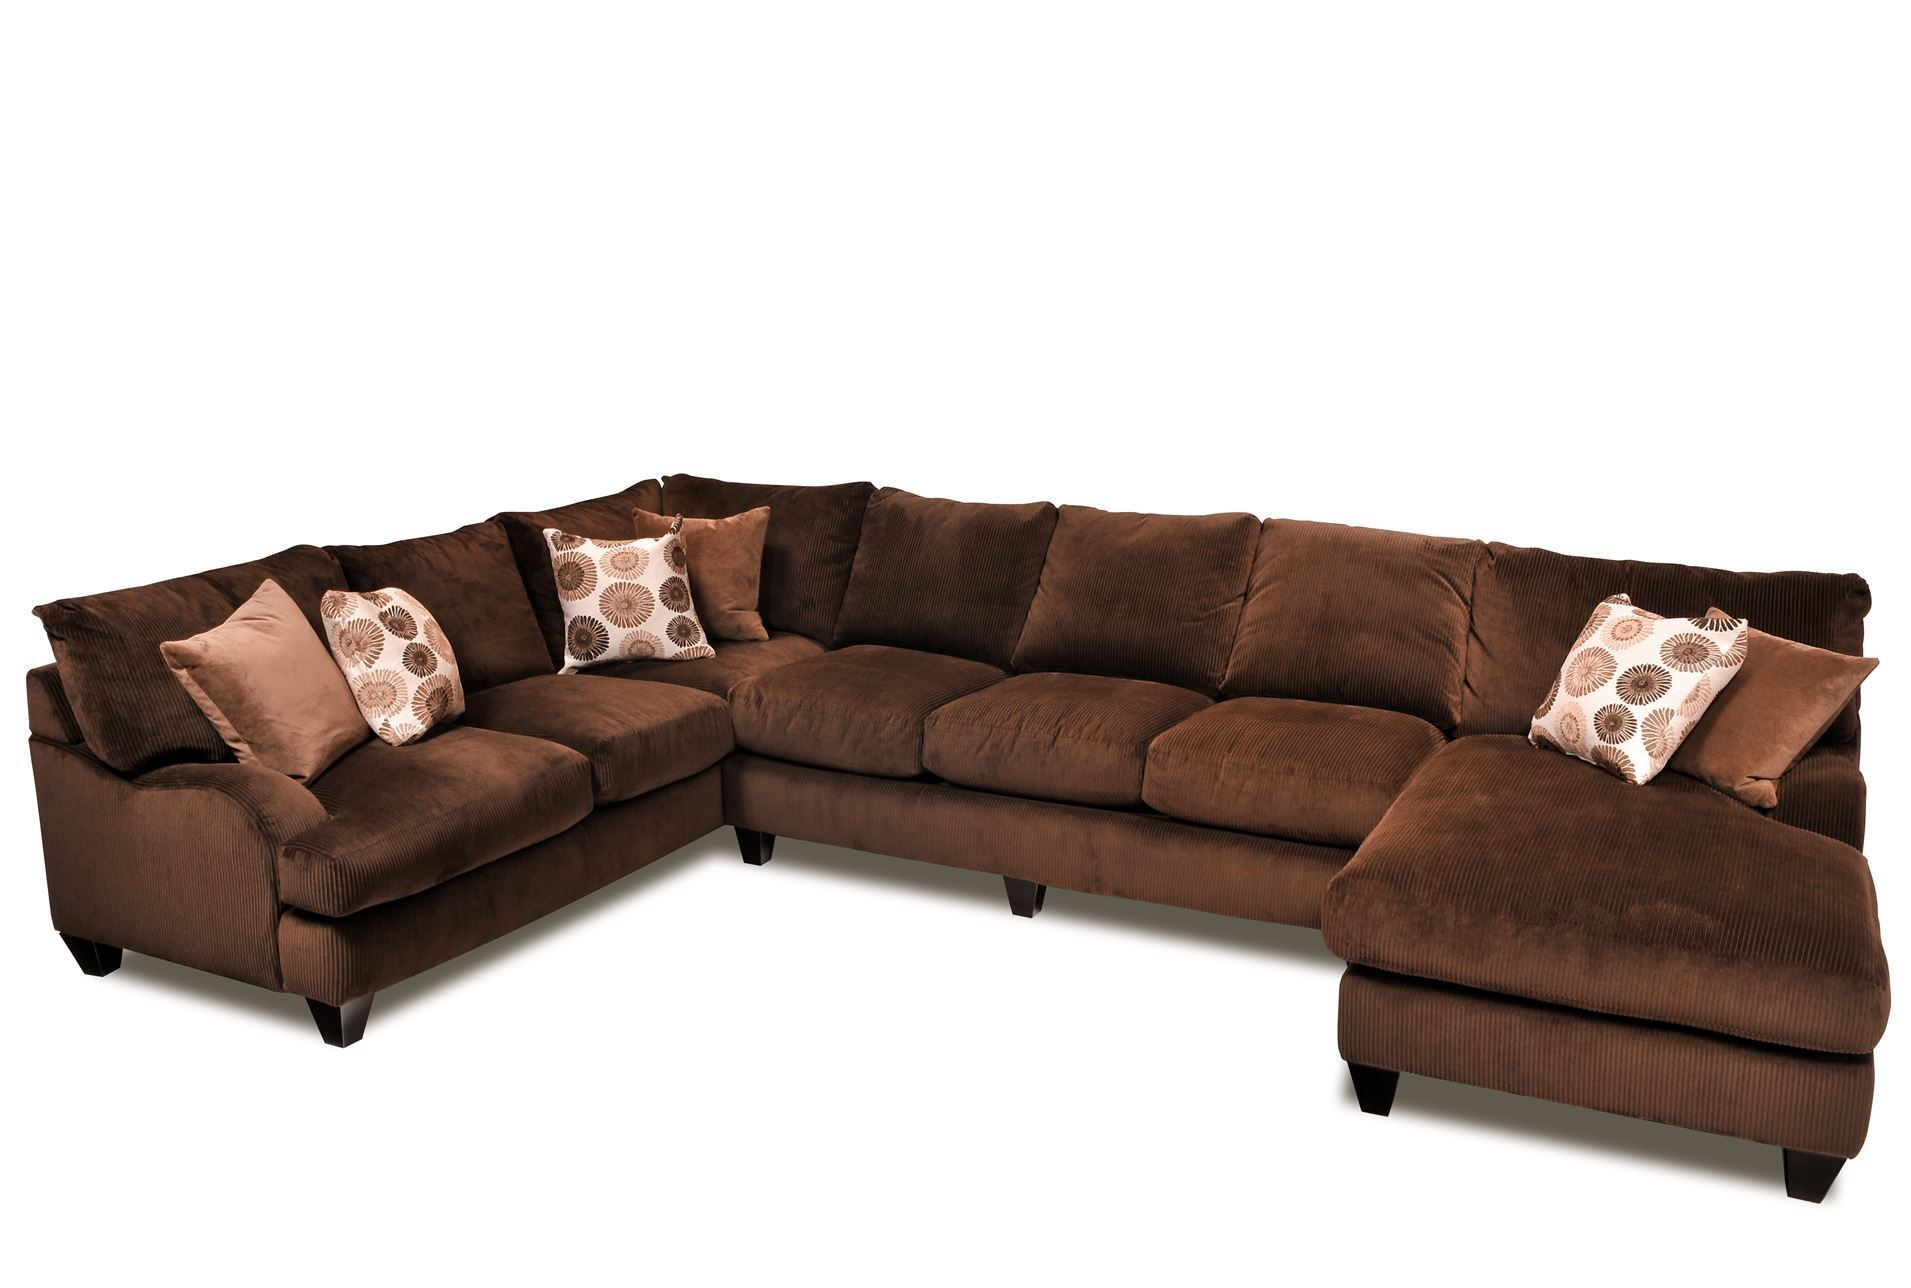 Curl Into The Comfort Of This Vast Sectional And Discover